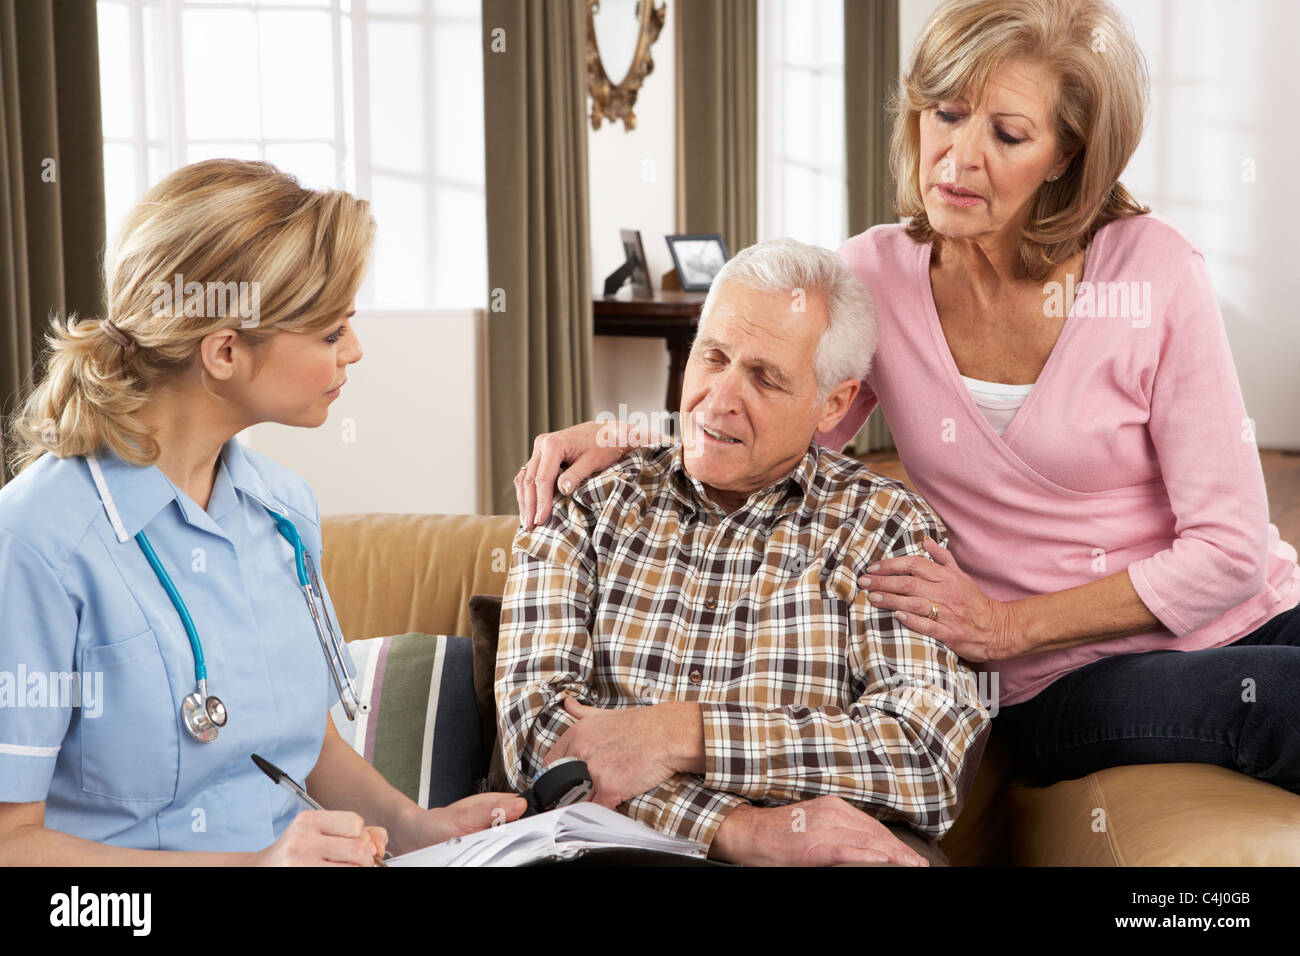 Senior Couple Talking To Health Visitor At Home - Stock Image